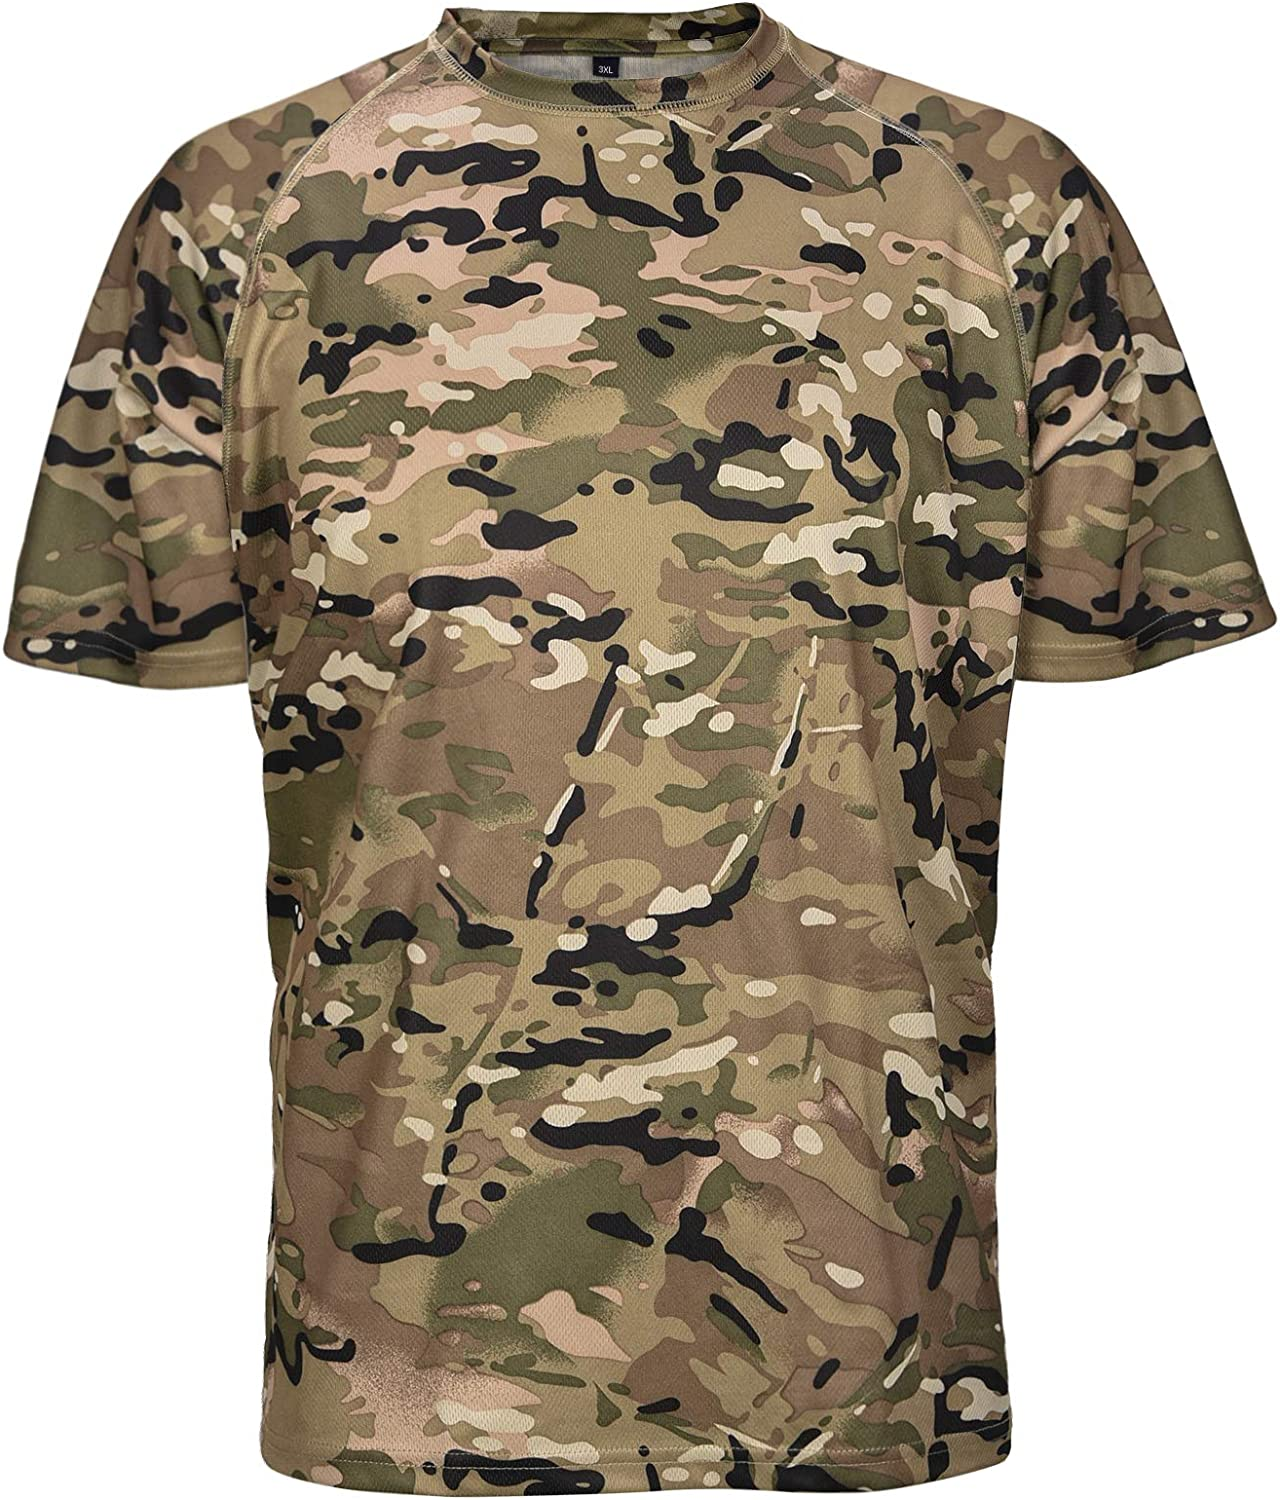 Wisdom High quality new Leaves Fixed price for sale Men's Short Sleeve Perfor Camo T-Shirt Lightweight